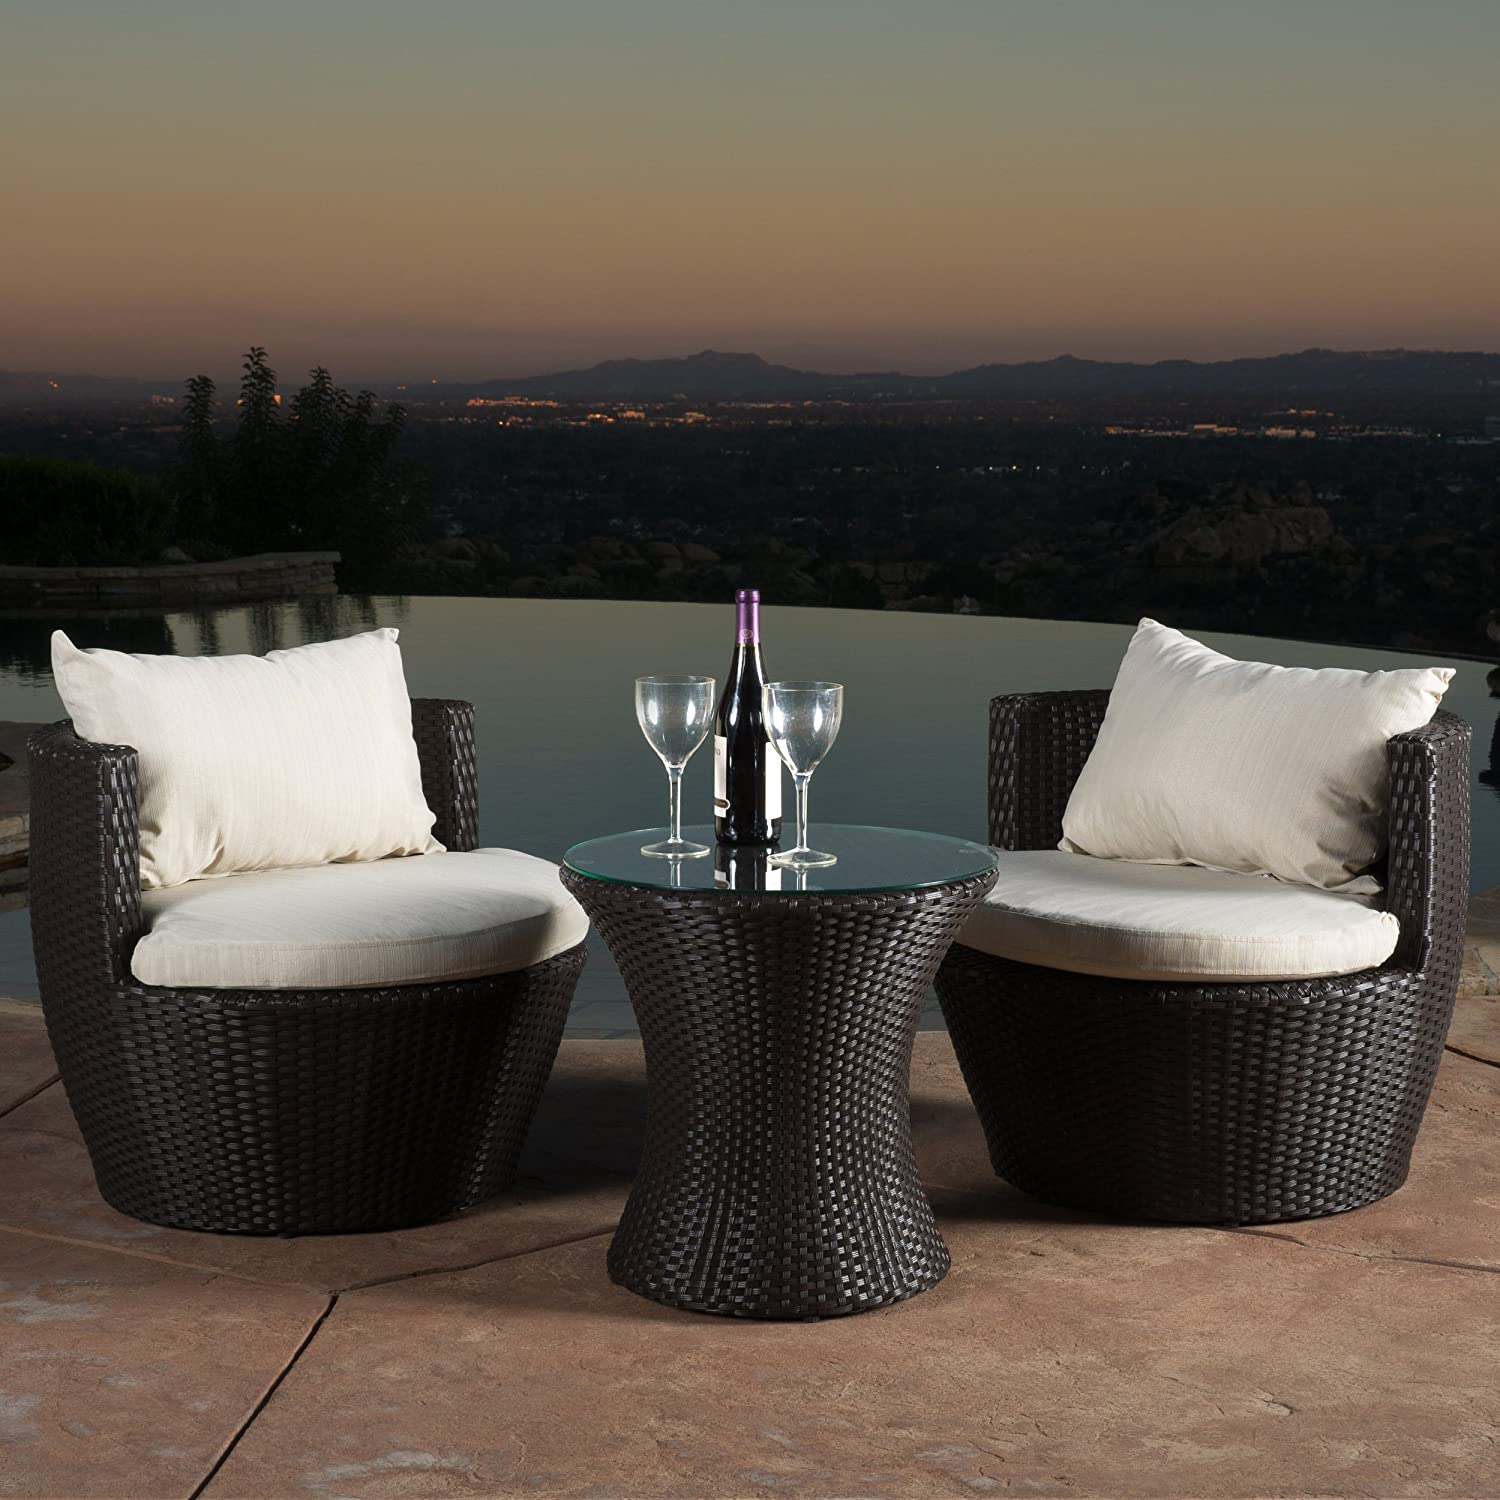 Beautiful Amazon.com : Kyoto Outdoor Patio Furniture Brown Wicker 3 Piece Chat Set W/  Cushions : Garden U0026 Outdoor